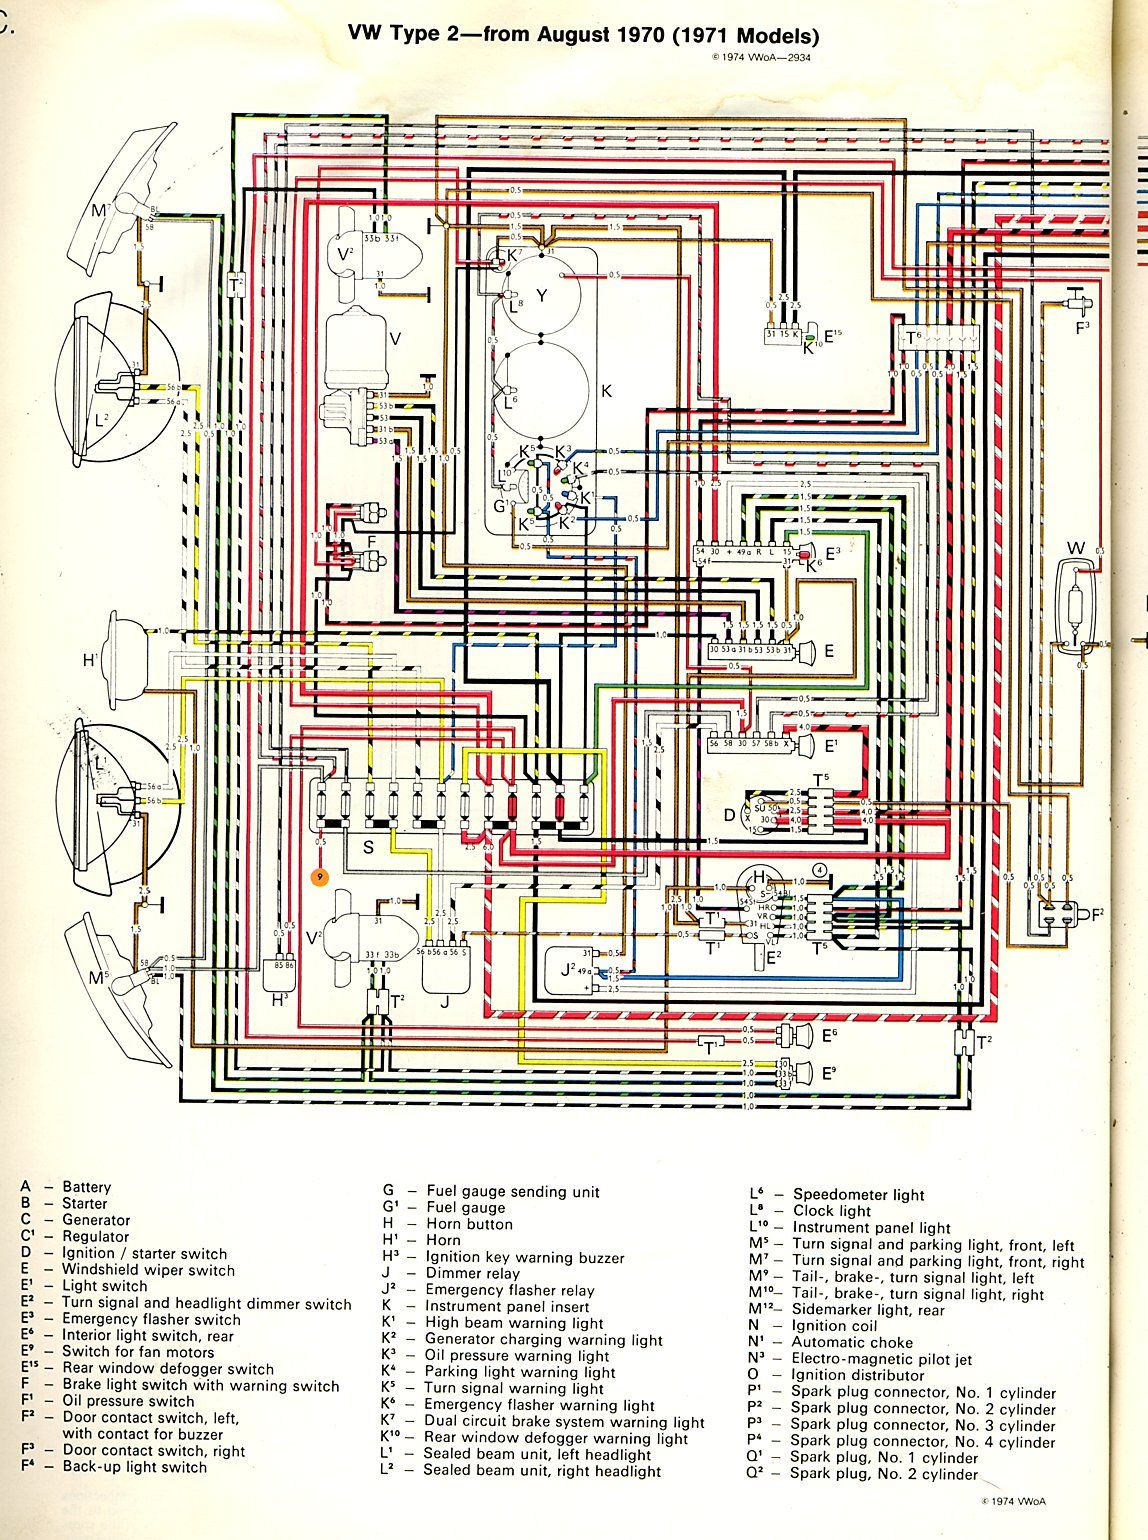 1971 Bus Wiring Diagram Thegoldenbug Com Vw Vocho Jeep Cj5